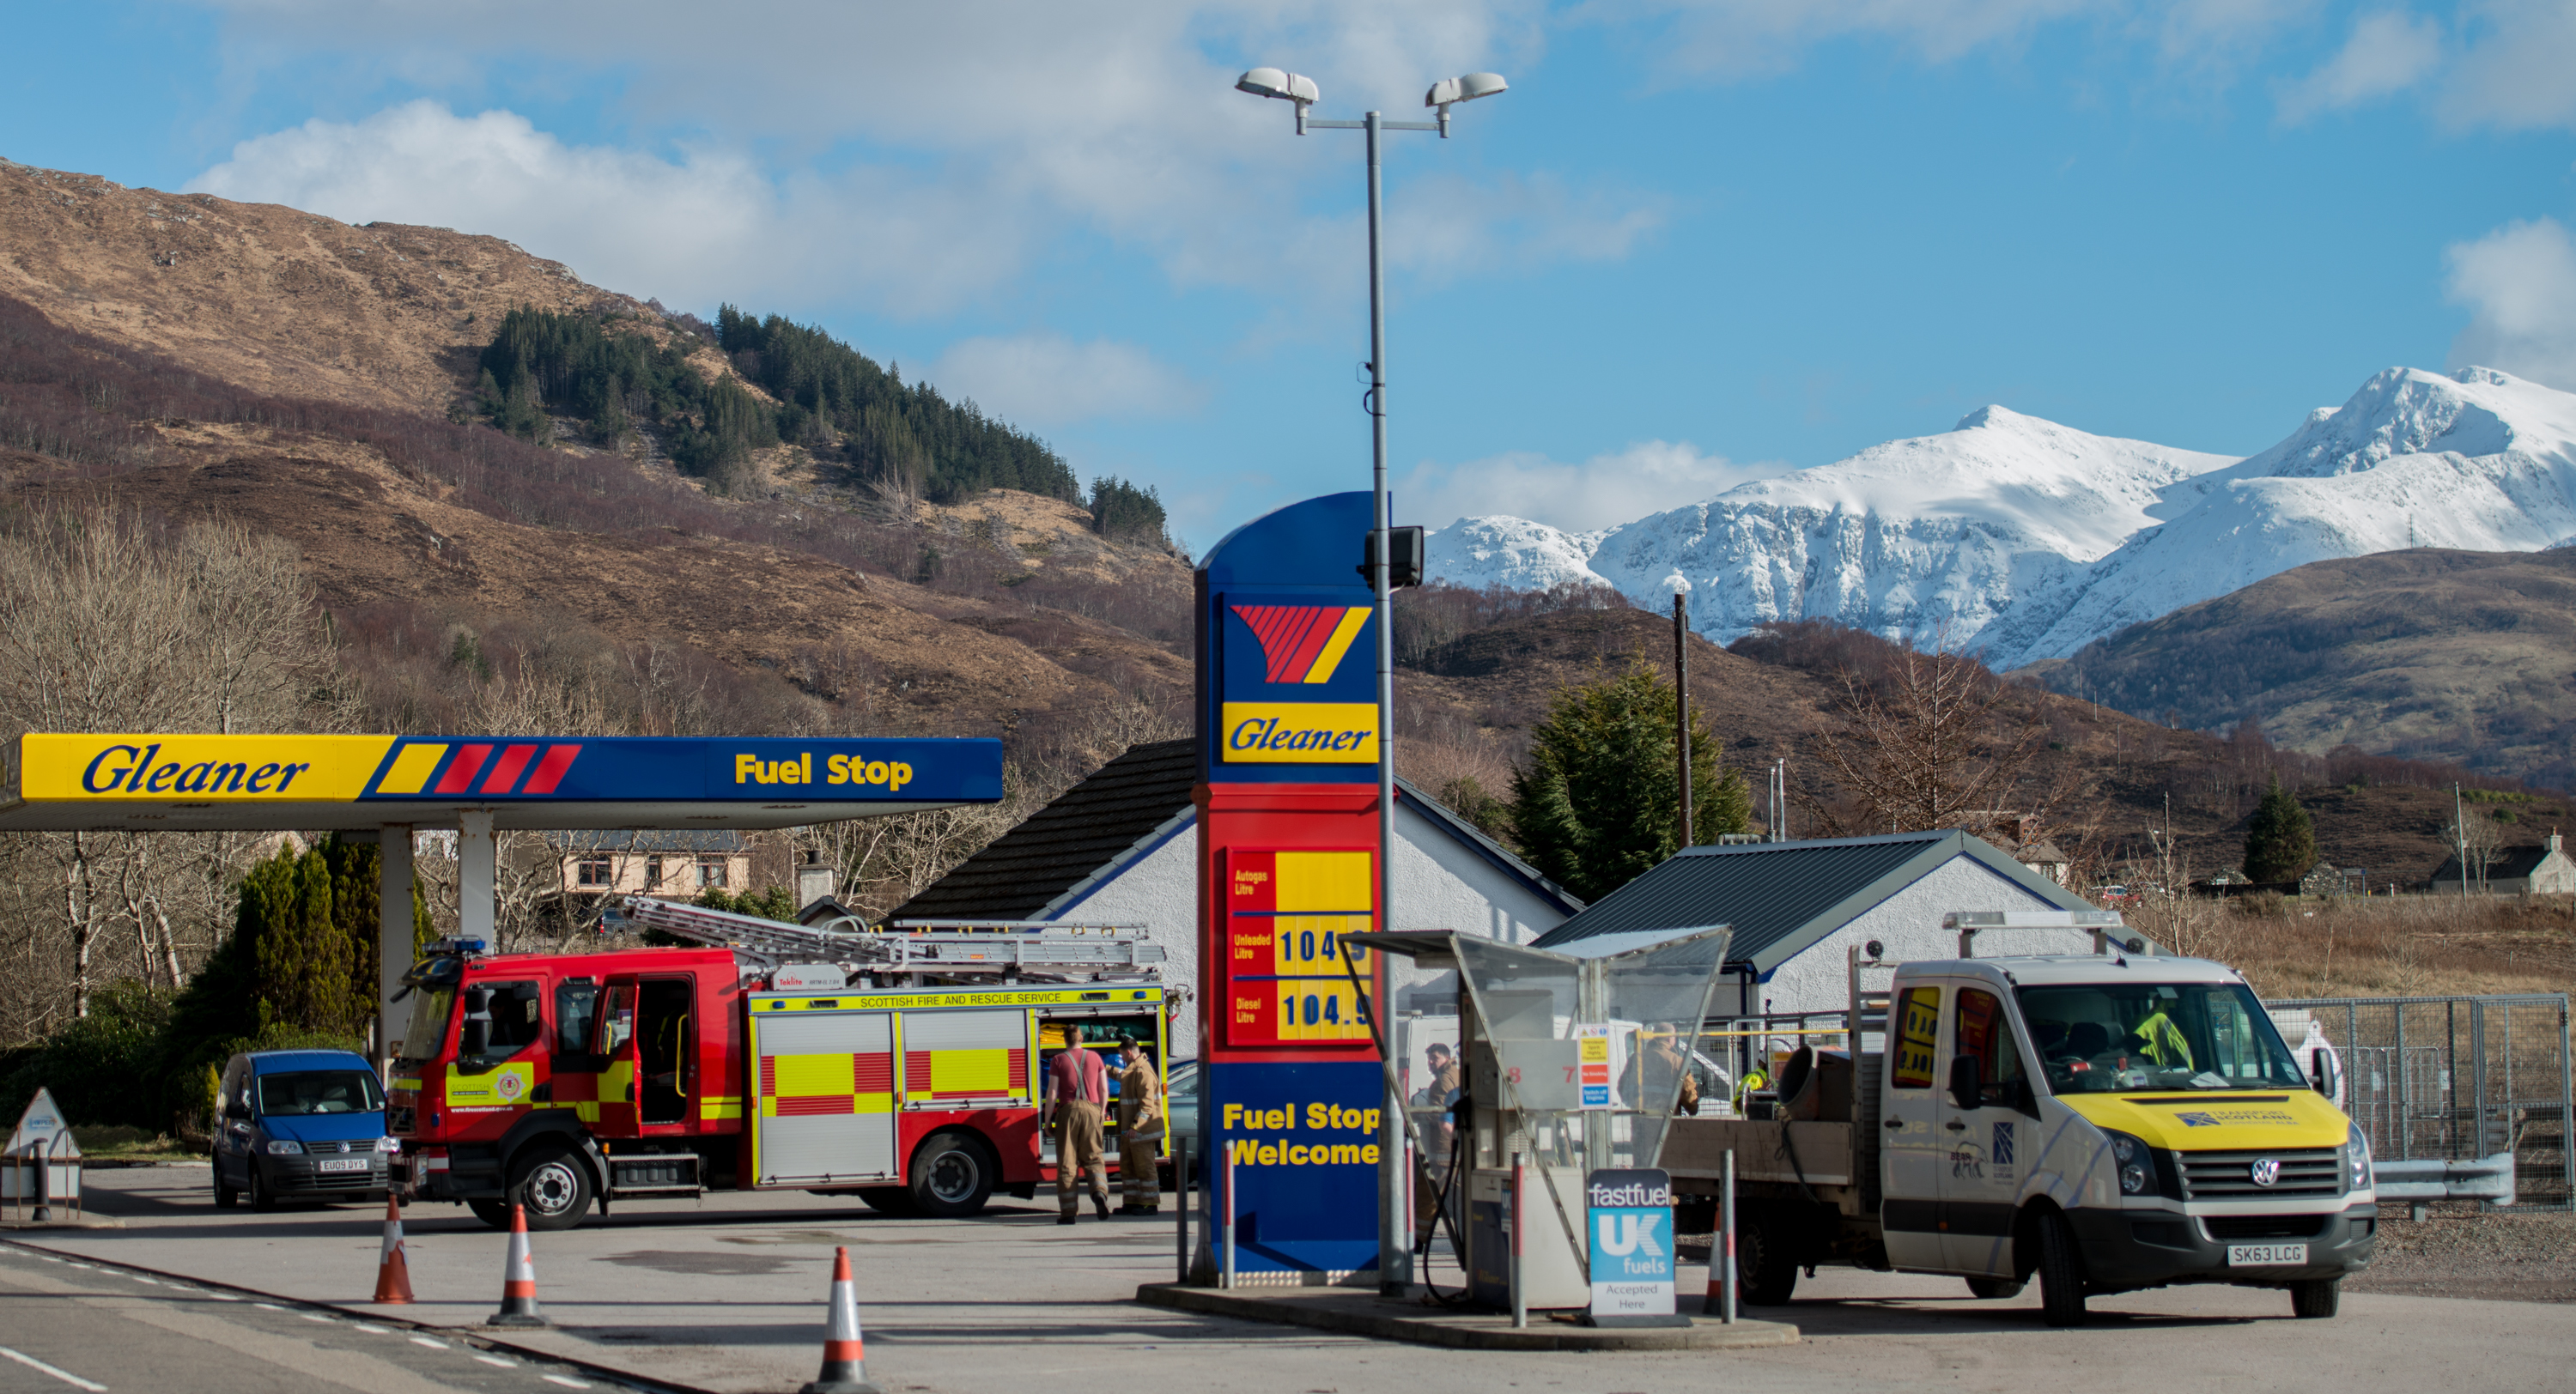 Fire crews attend a fuel spill at the filling station in Onich